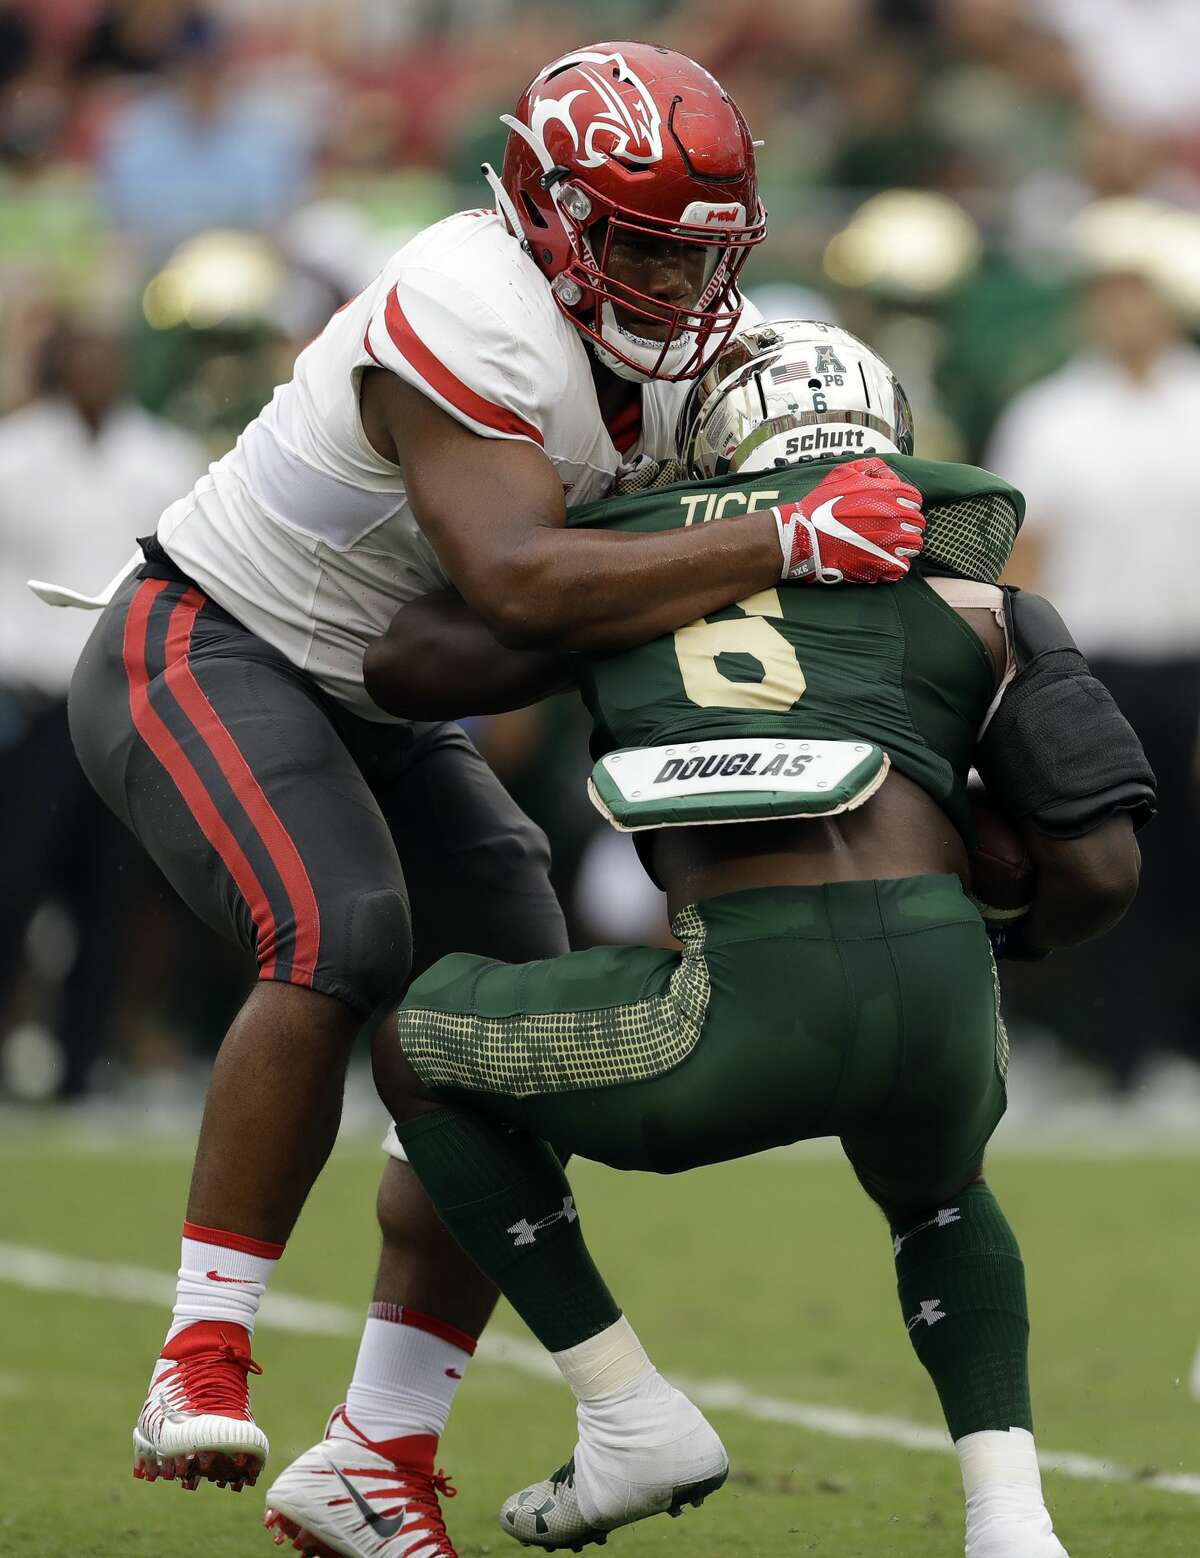 Houston defensive tackle Ed Oliver takes down South Florida running back Darius Tice (6) for a loss during the first half of an NCAA college football game, Saturday, Oct. 28, 2017, in Tampa, Fla. (AP Photo/Chris O'Meara)